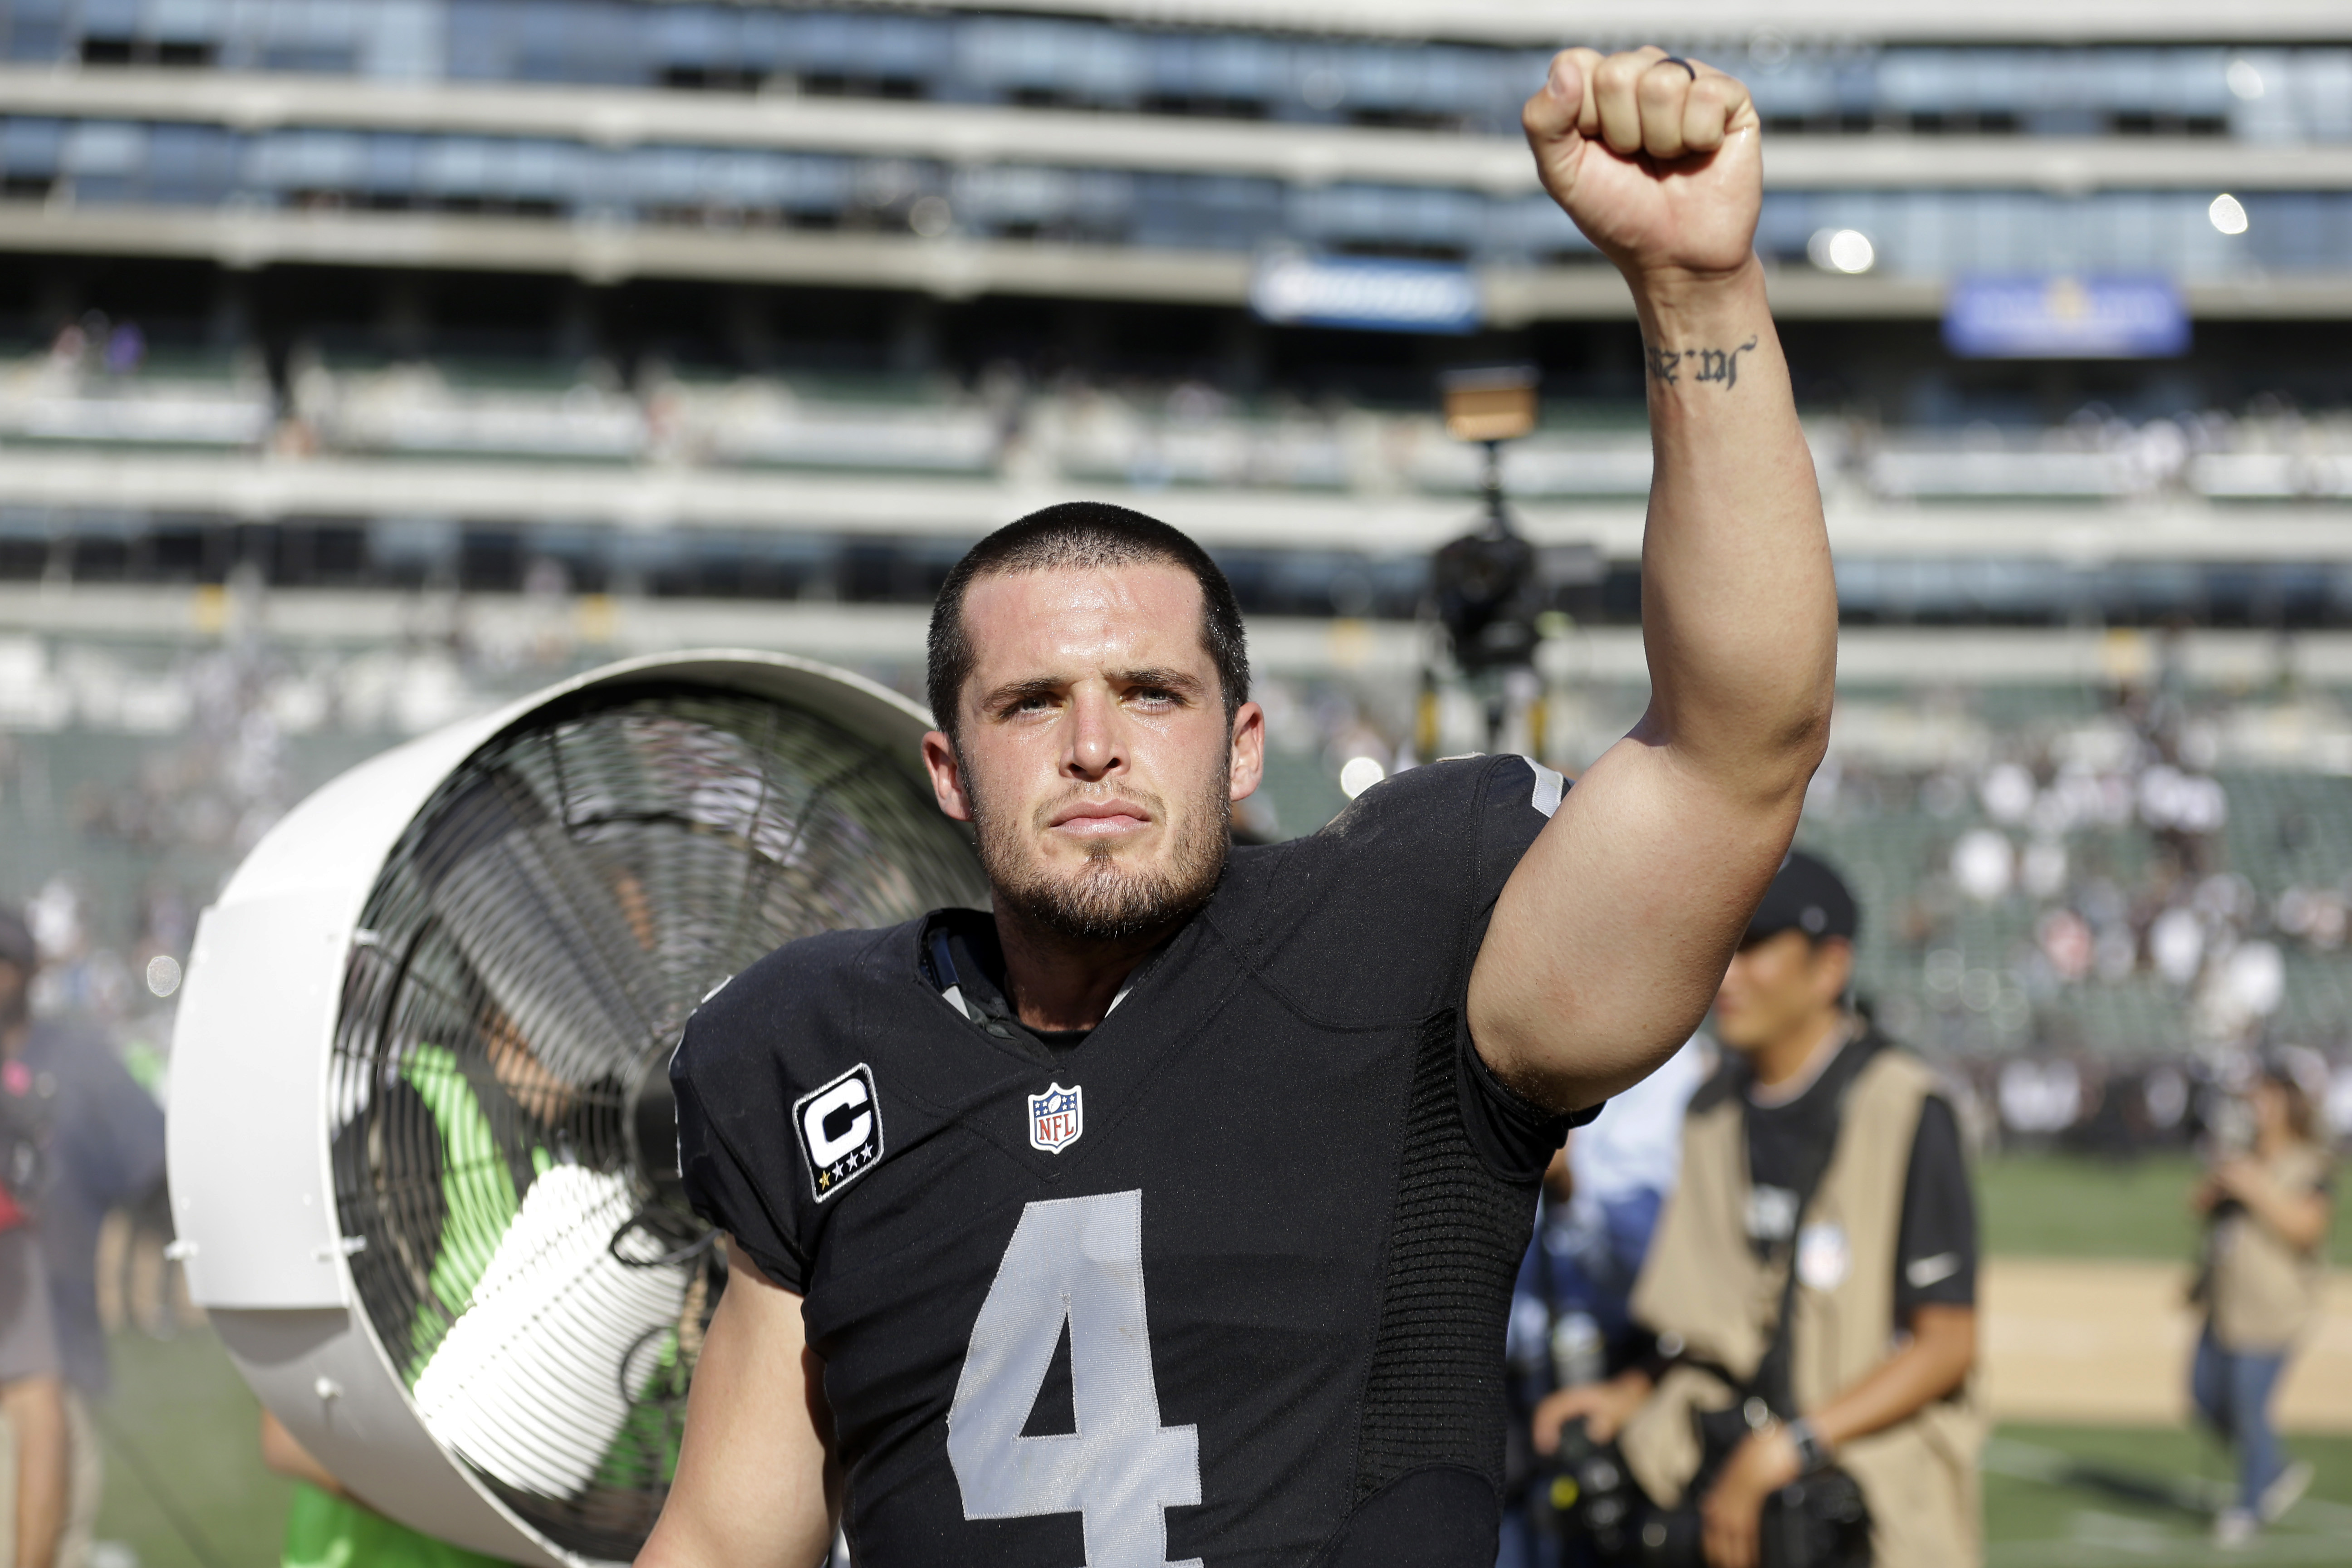 FILE - IN this Sept. 20, 2015 file photo, Oakland Raiders quarterback Derek Carr celebrates after a 37-33 win over the Baltimore Ravens during an NFL football game in Oakland, Calif. Carr threw a 12-yard touchdown pass to Seth Roberts with 26 seconds left